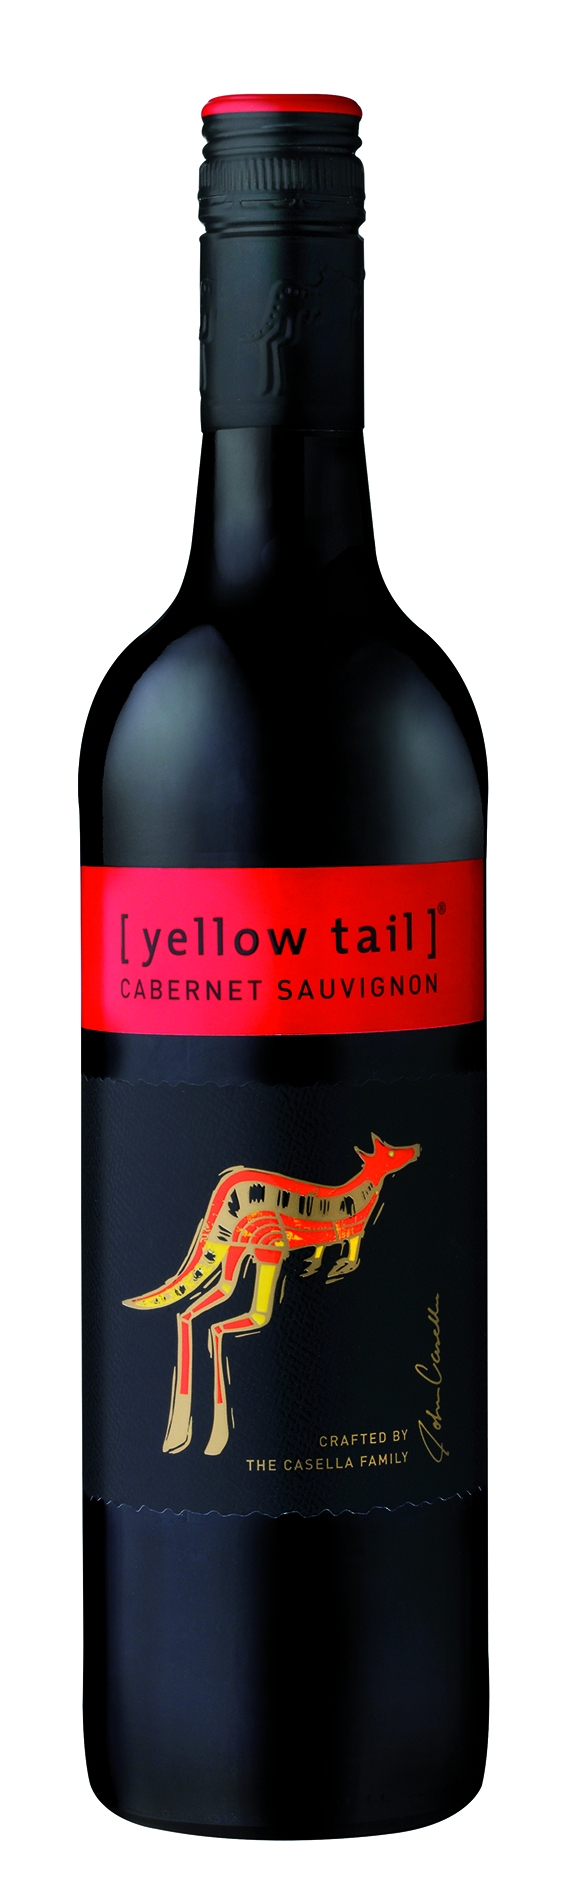 Yellow Tail, Cabernet Sauvignon, red